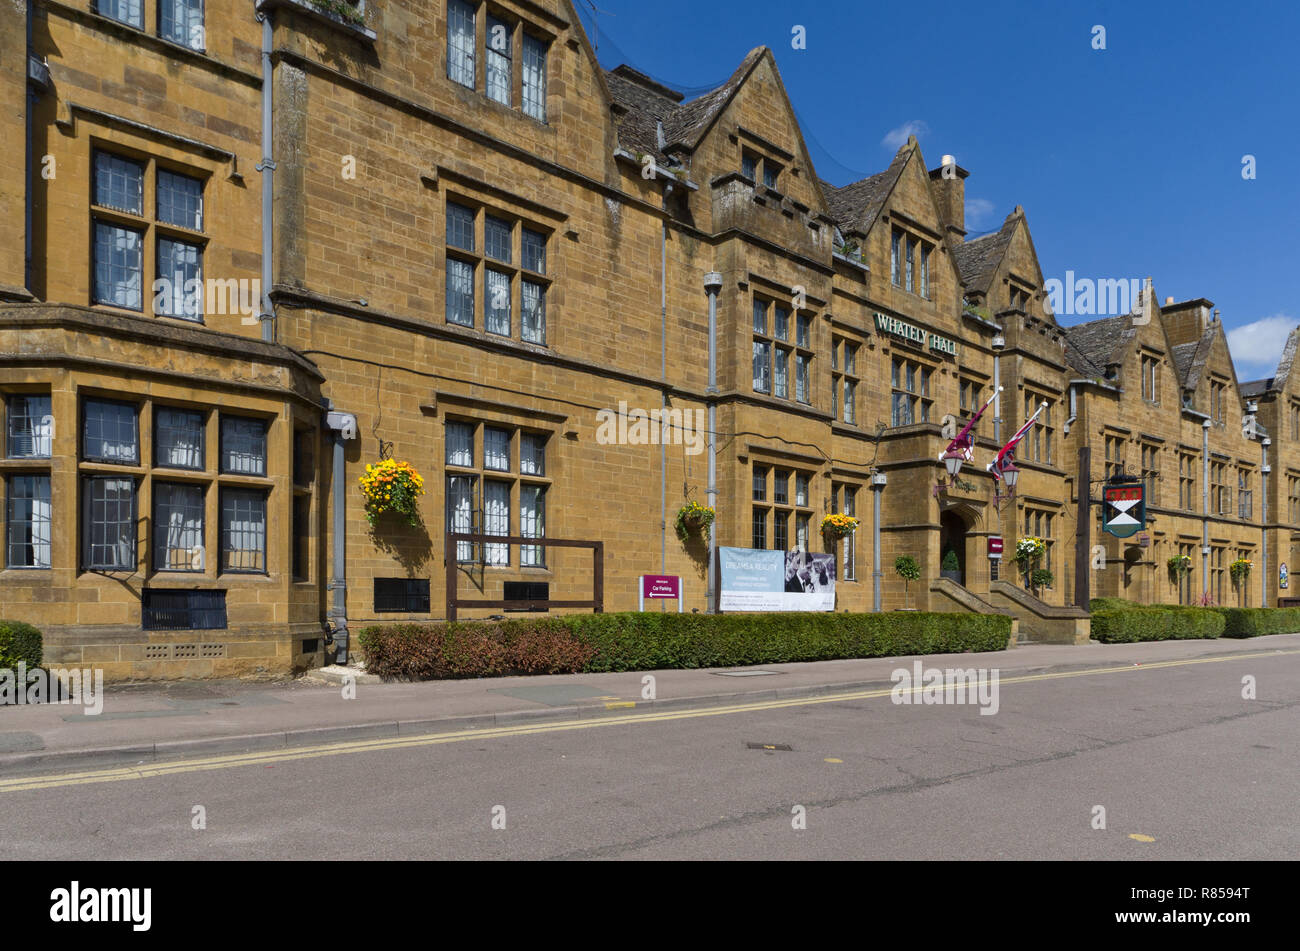 Historic 17th century Whately Hall, Horse Fair, Banbury UK; now a hotel, part of the Mercure chain - Stock Image